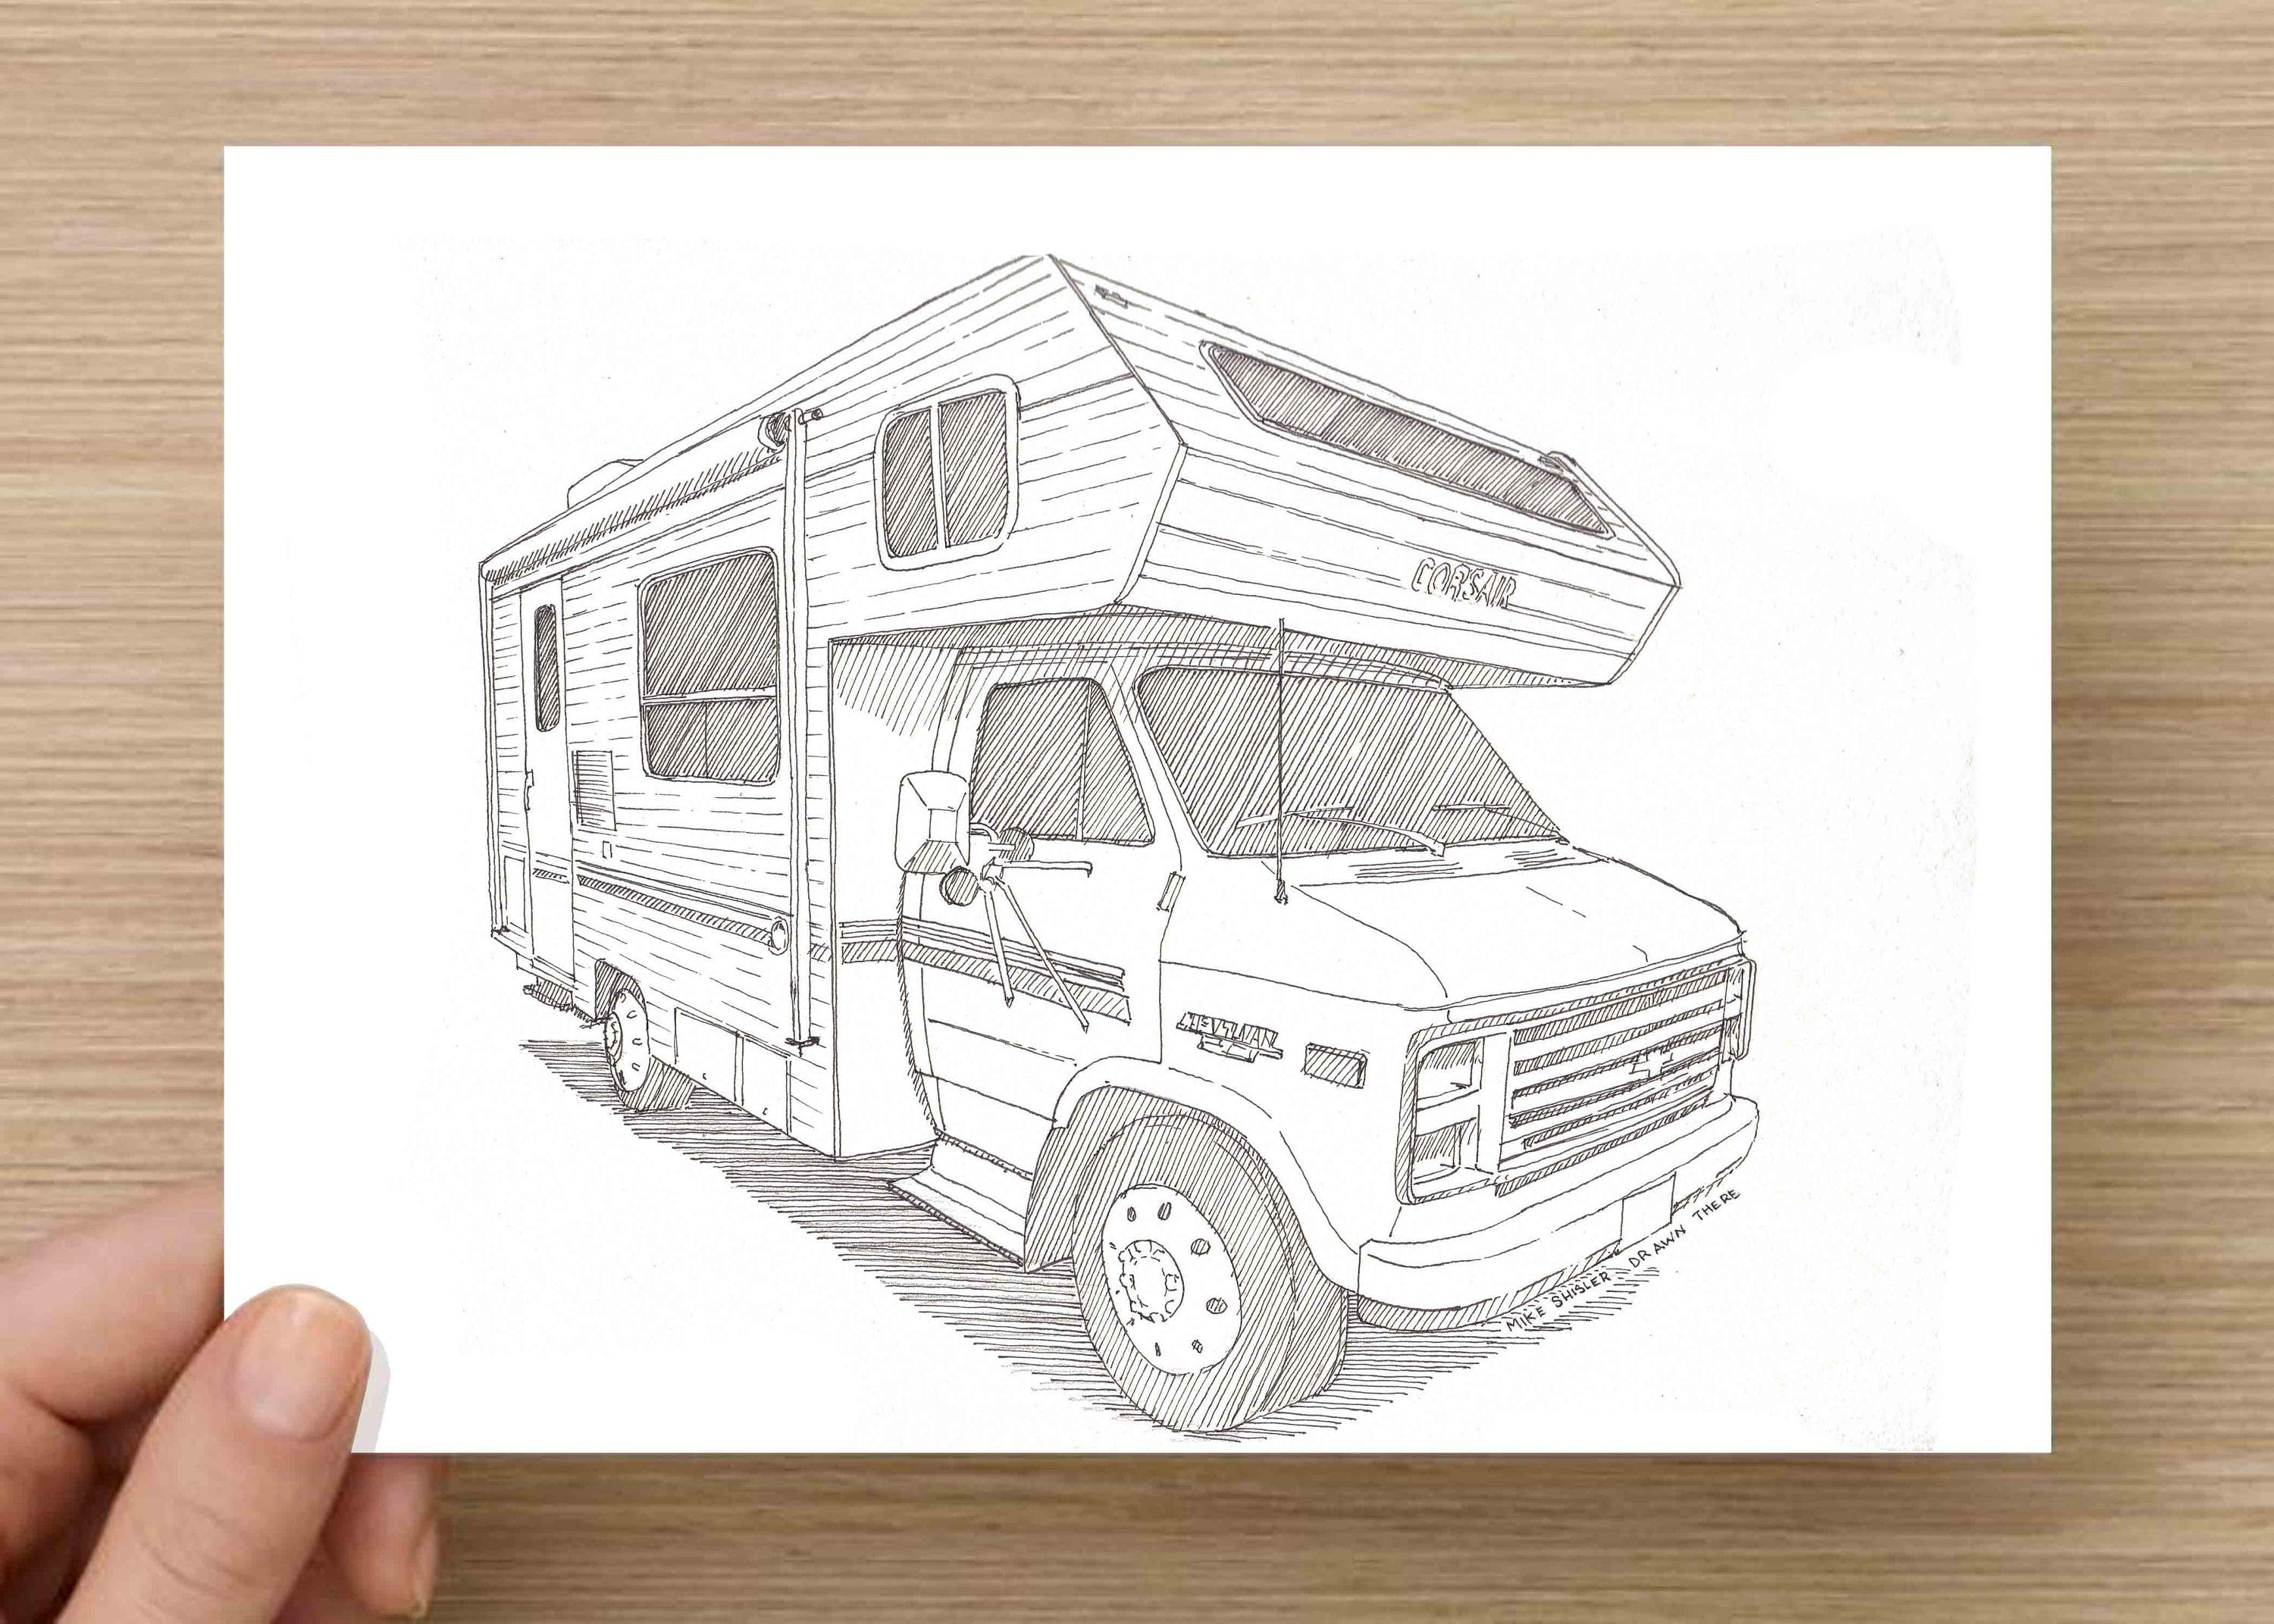 Ink Drawing Of A Camper RV